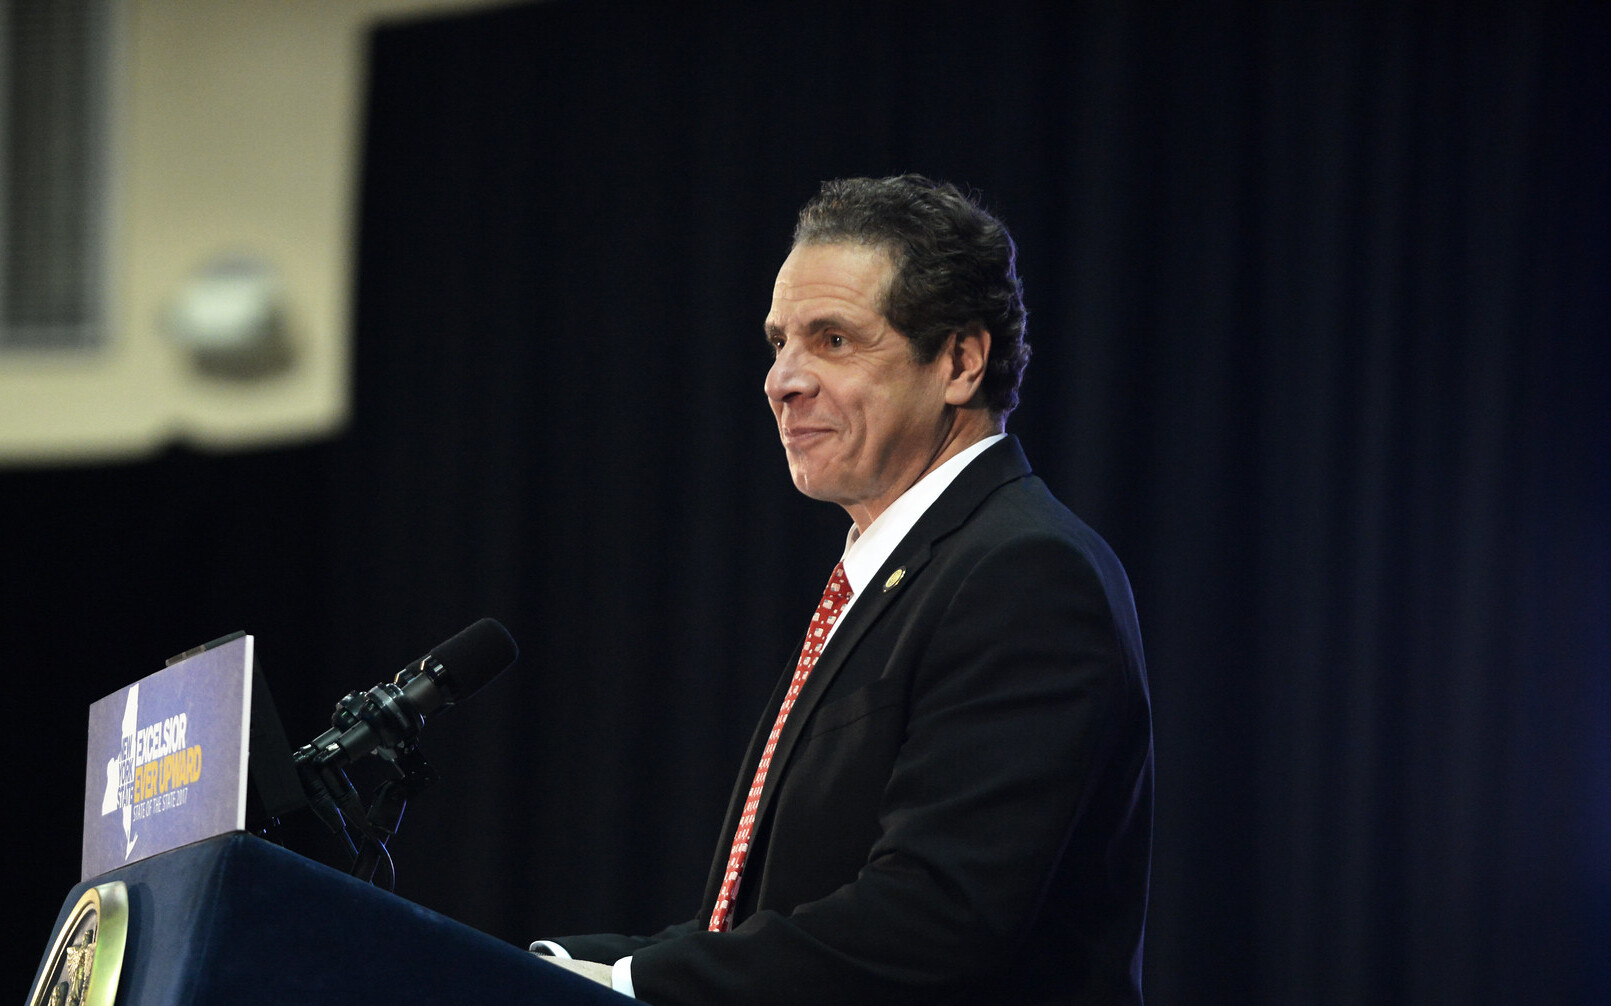 WATCH: New York Democratic Governor Andrew Cuomo Discusses Presidential Run